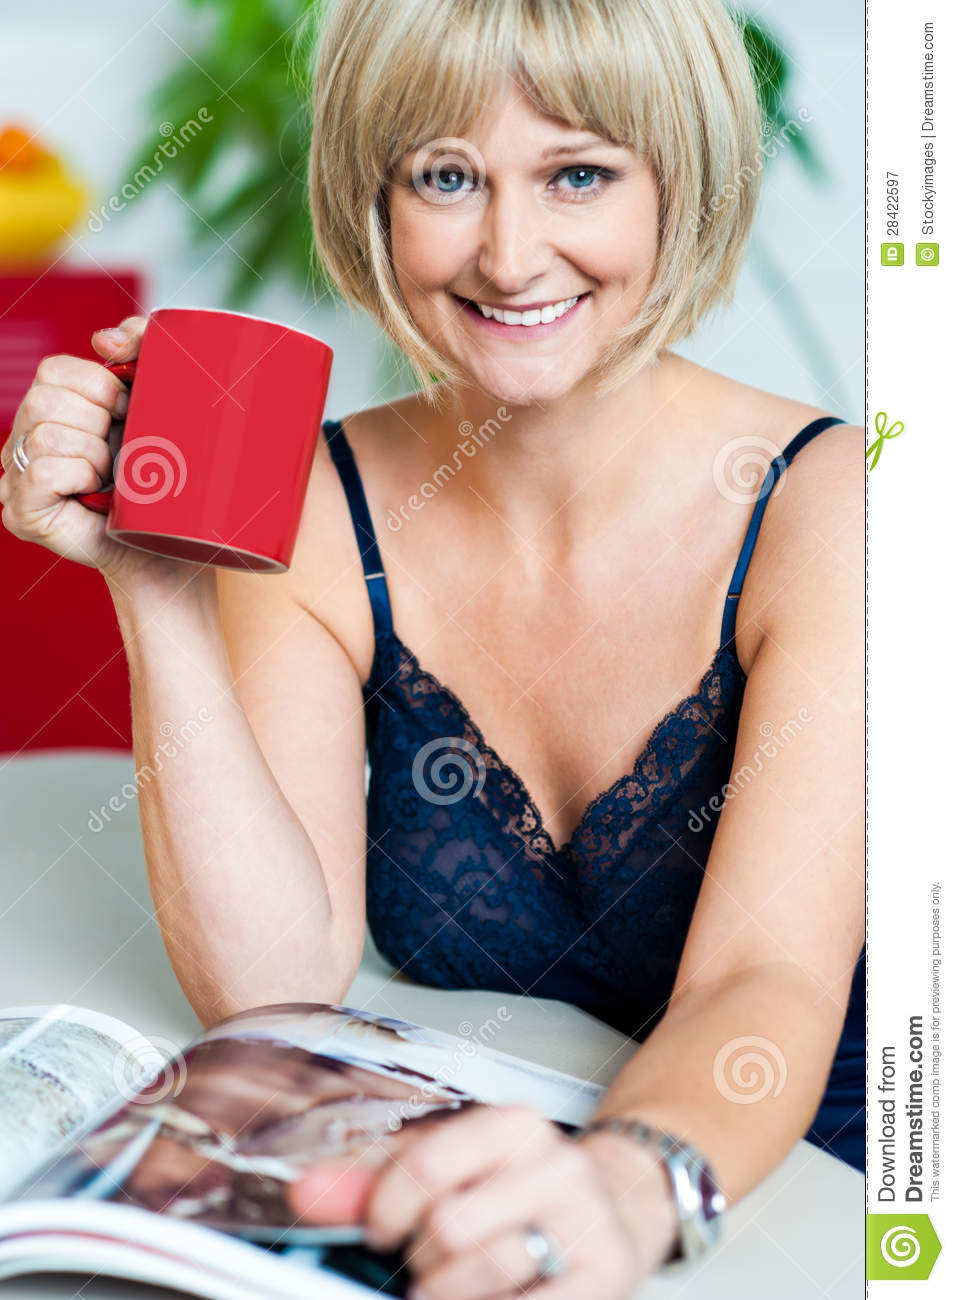 pretty woman with a coffee mug in hand reading magazine royalty free stock photography image. Black Bedroom Furniture Sets. Home Design Ideas